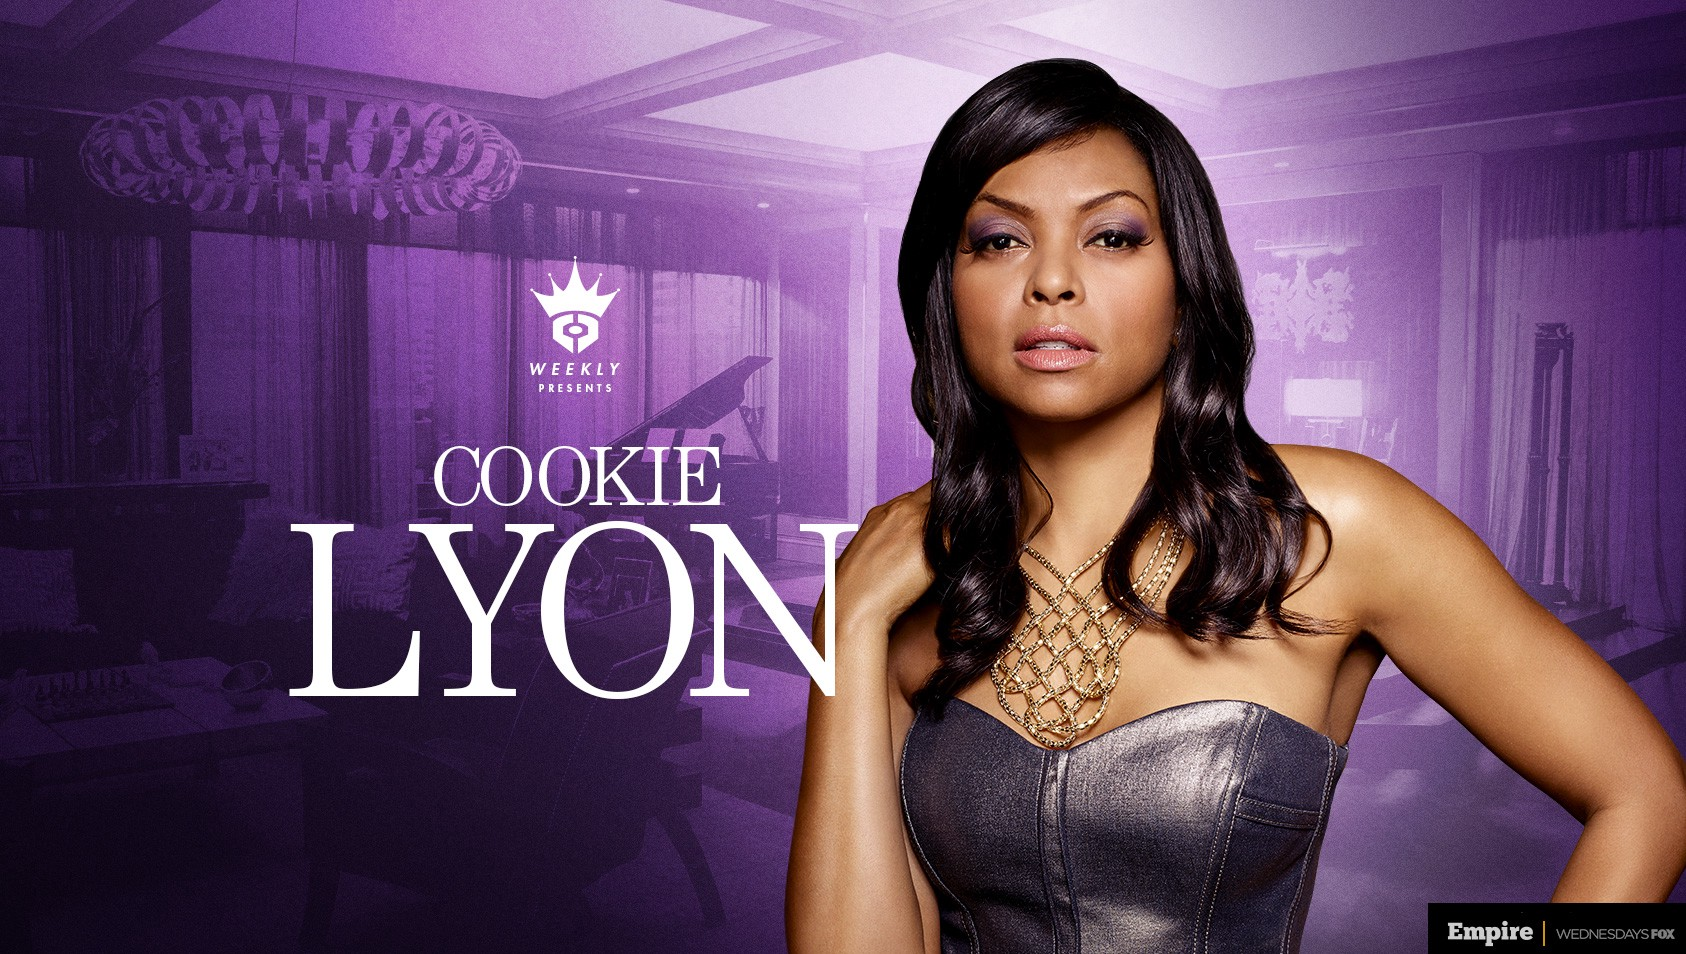 Cutscenes moreover Cookie Lyon The Music Impresario Returns To Empire F6902e489929 also  on leopard print couch